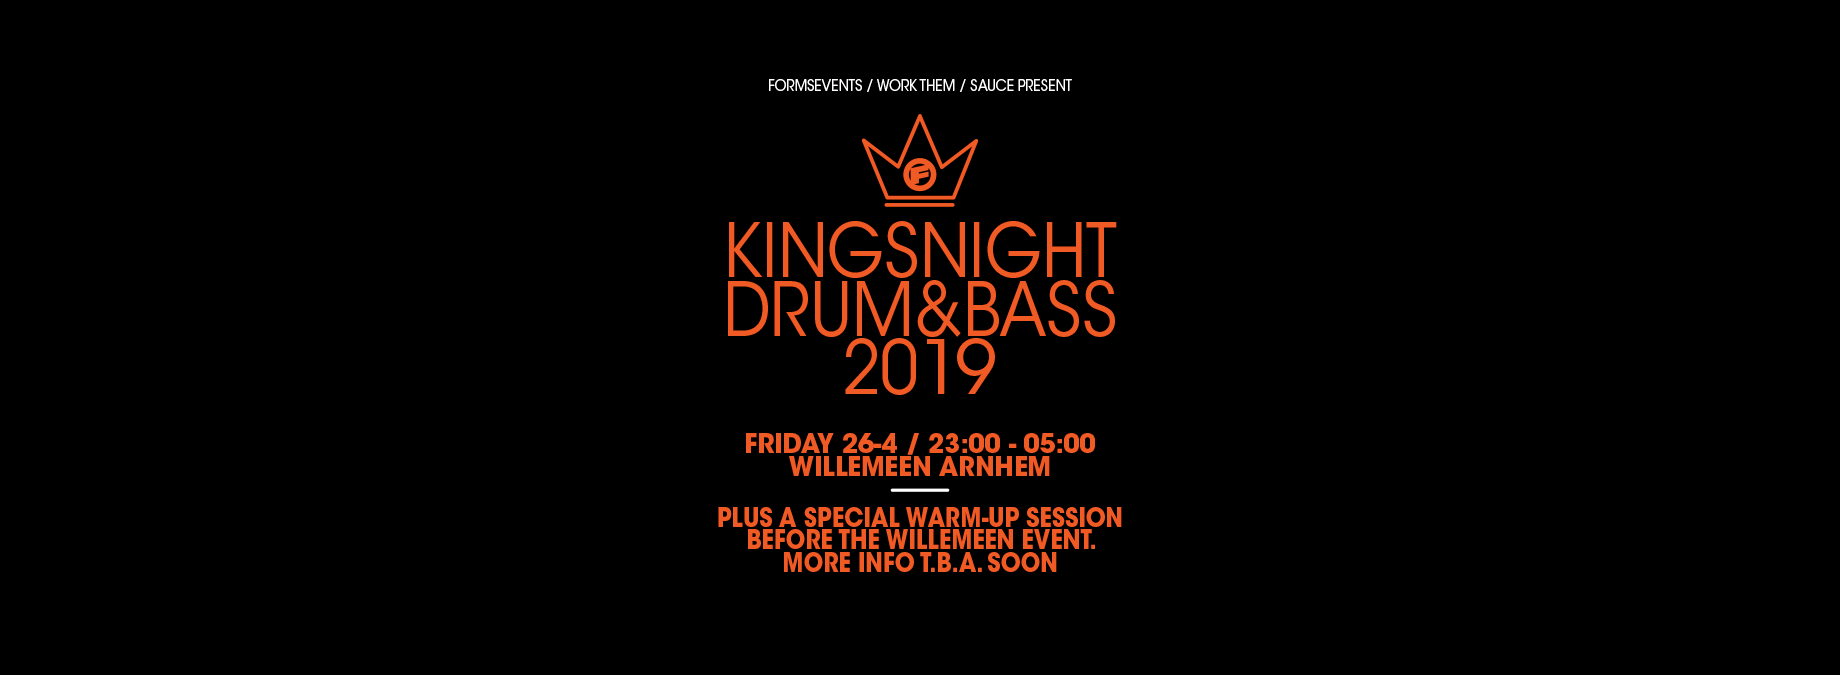 FORMS present 'The King Of Bass' 2019 / 2 DAYS